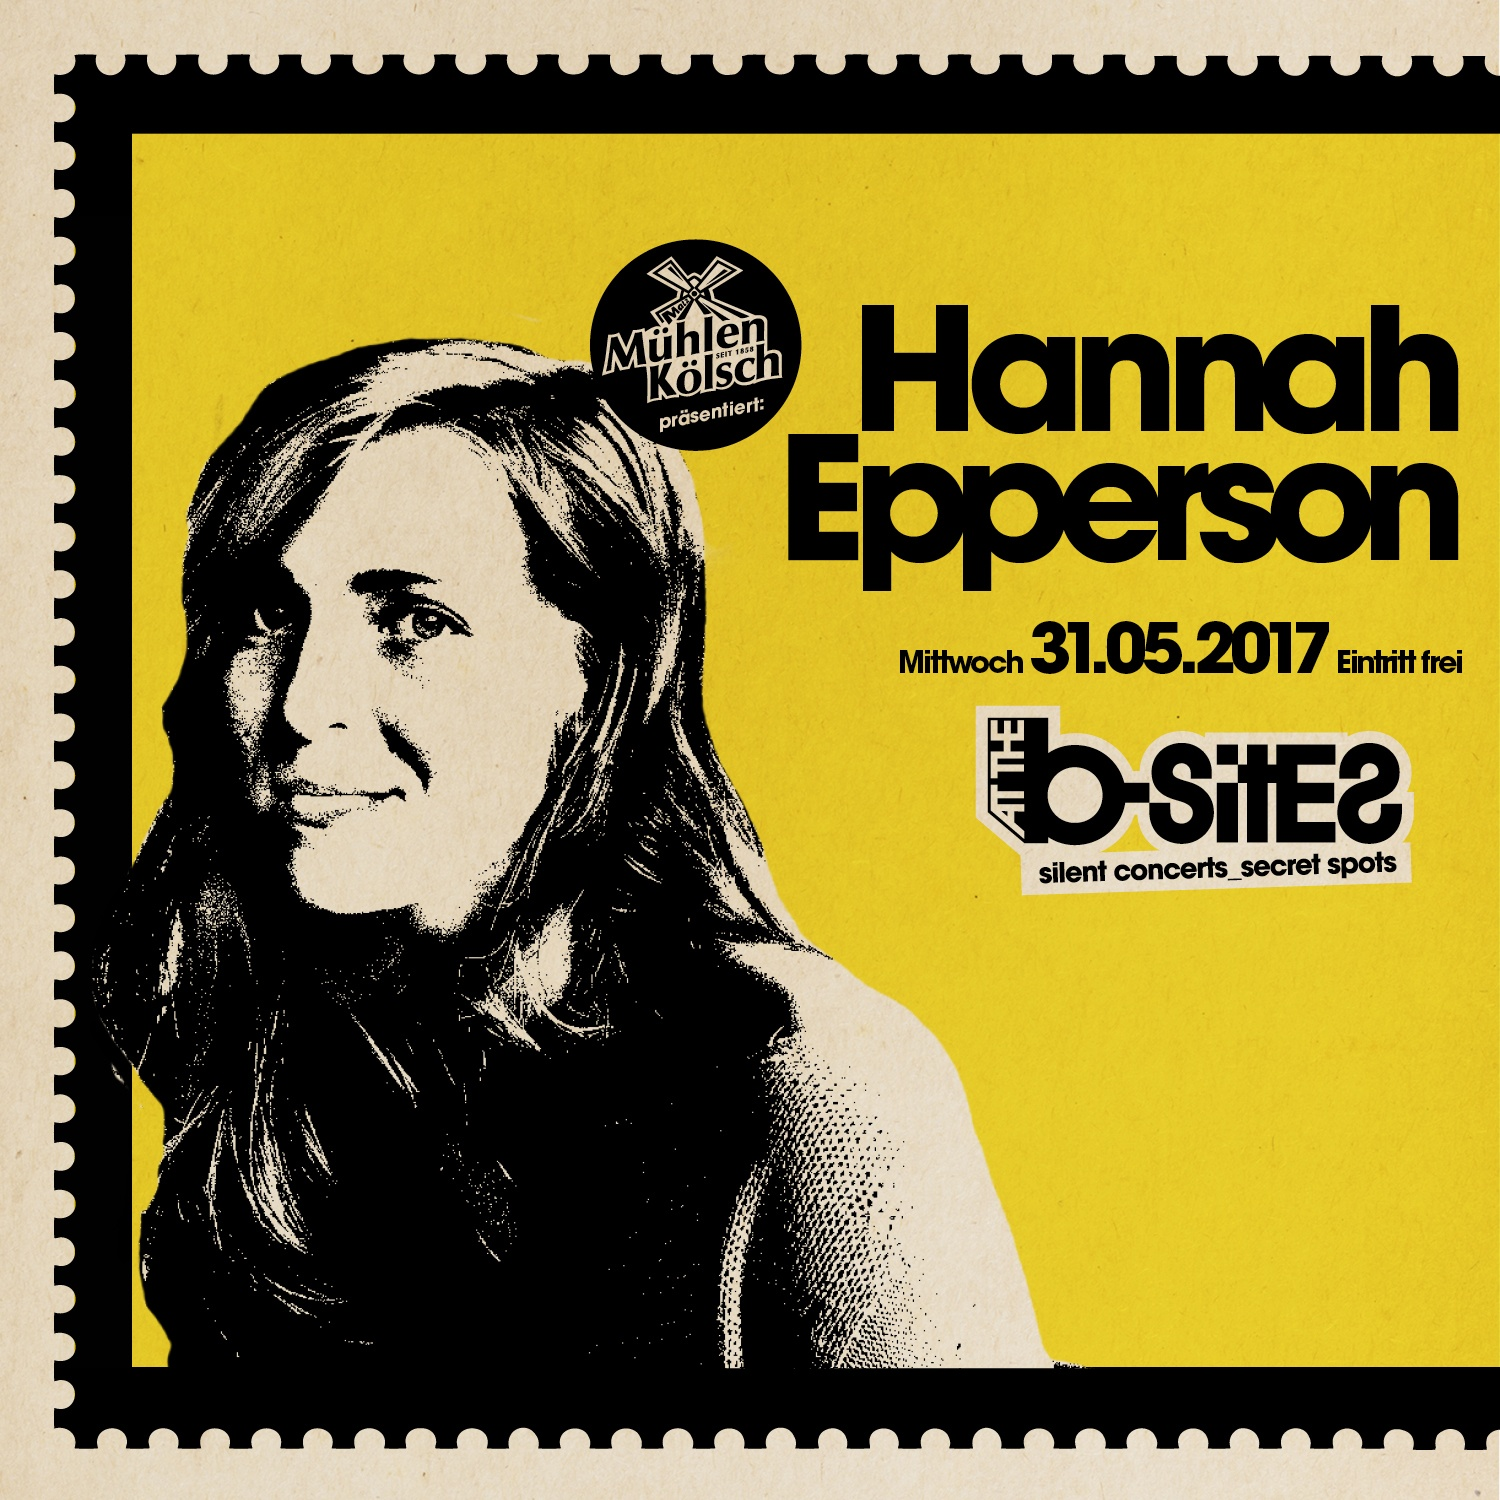 HANNAH EPPERSON at the b-sites